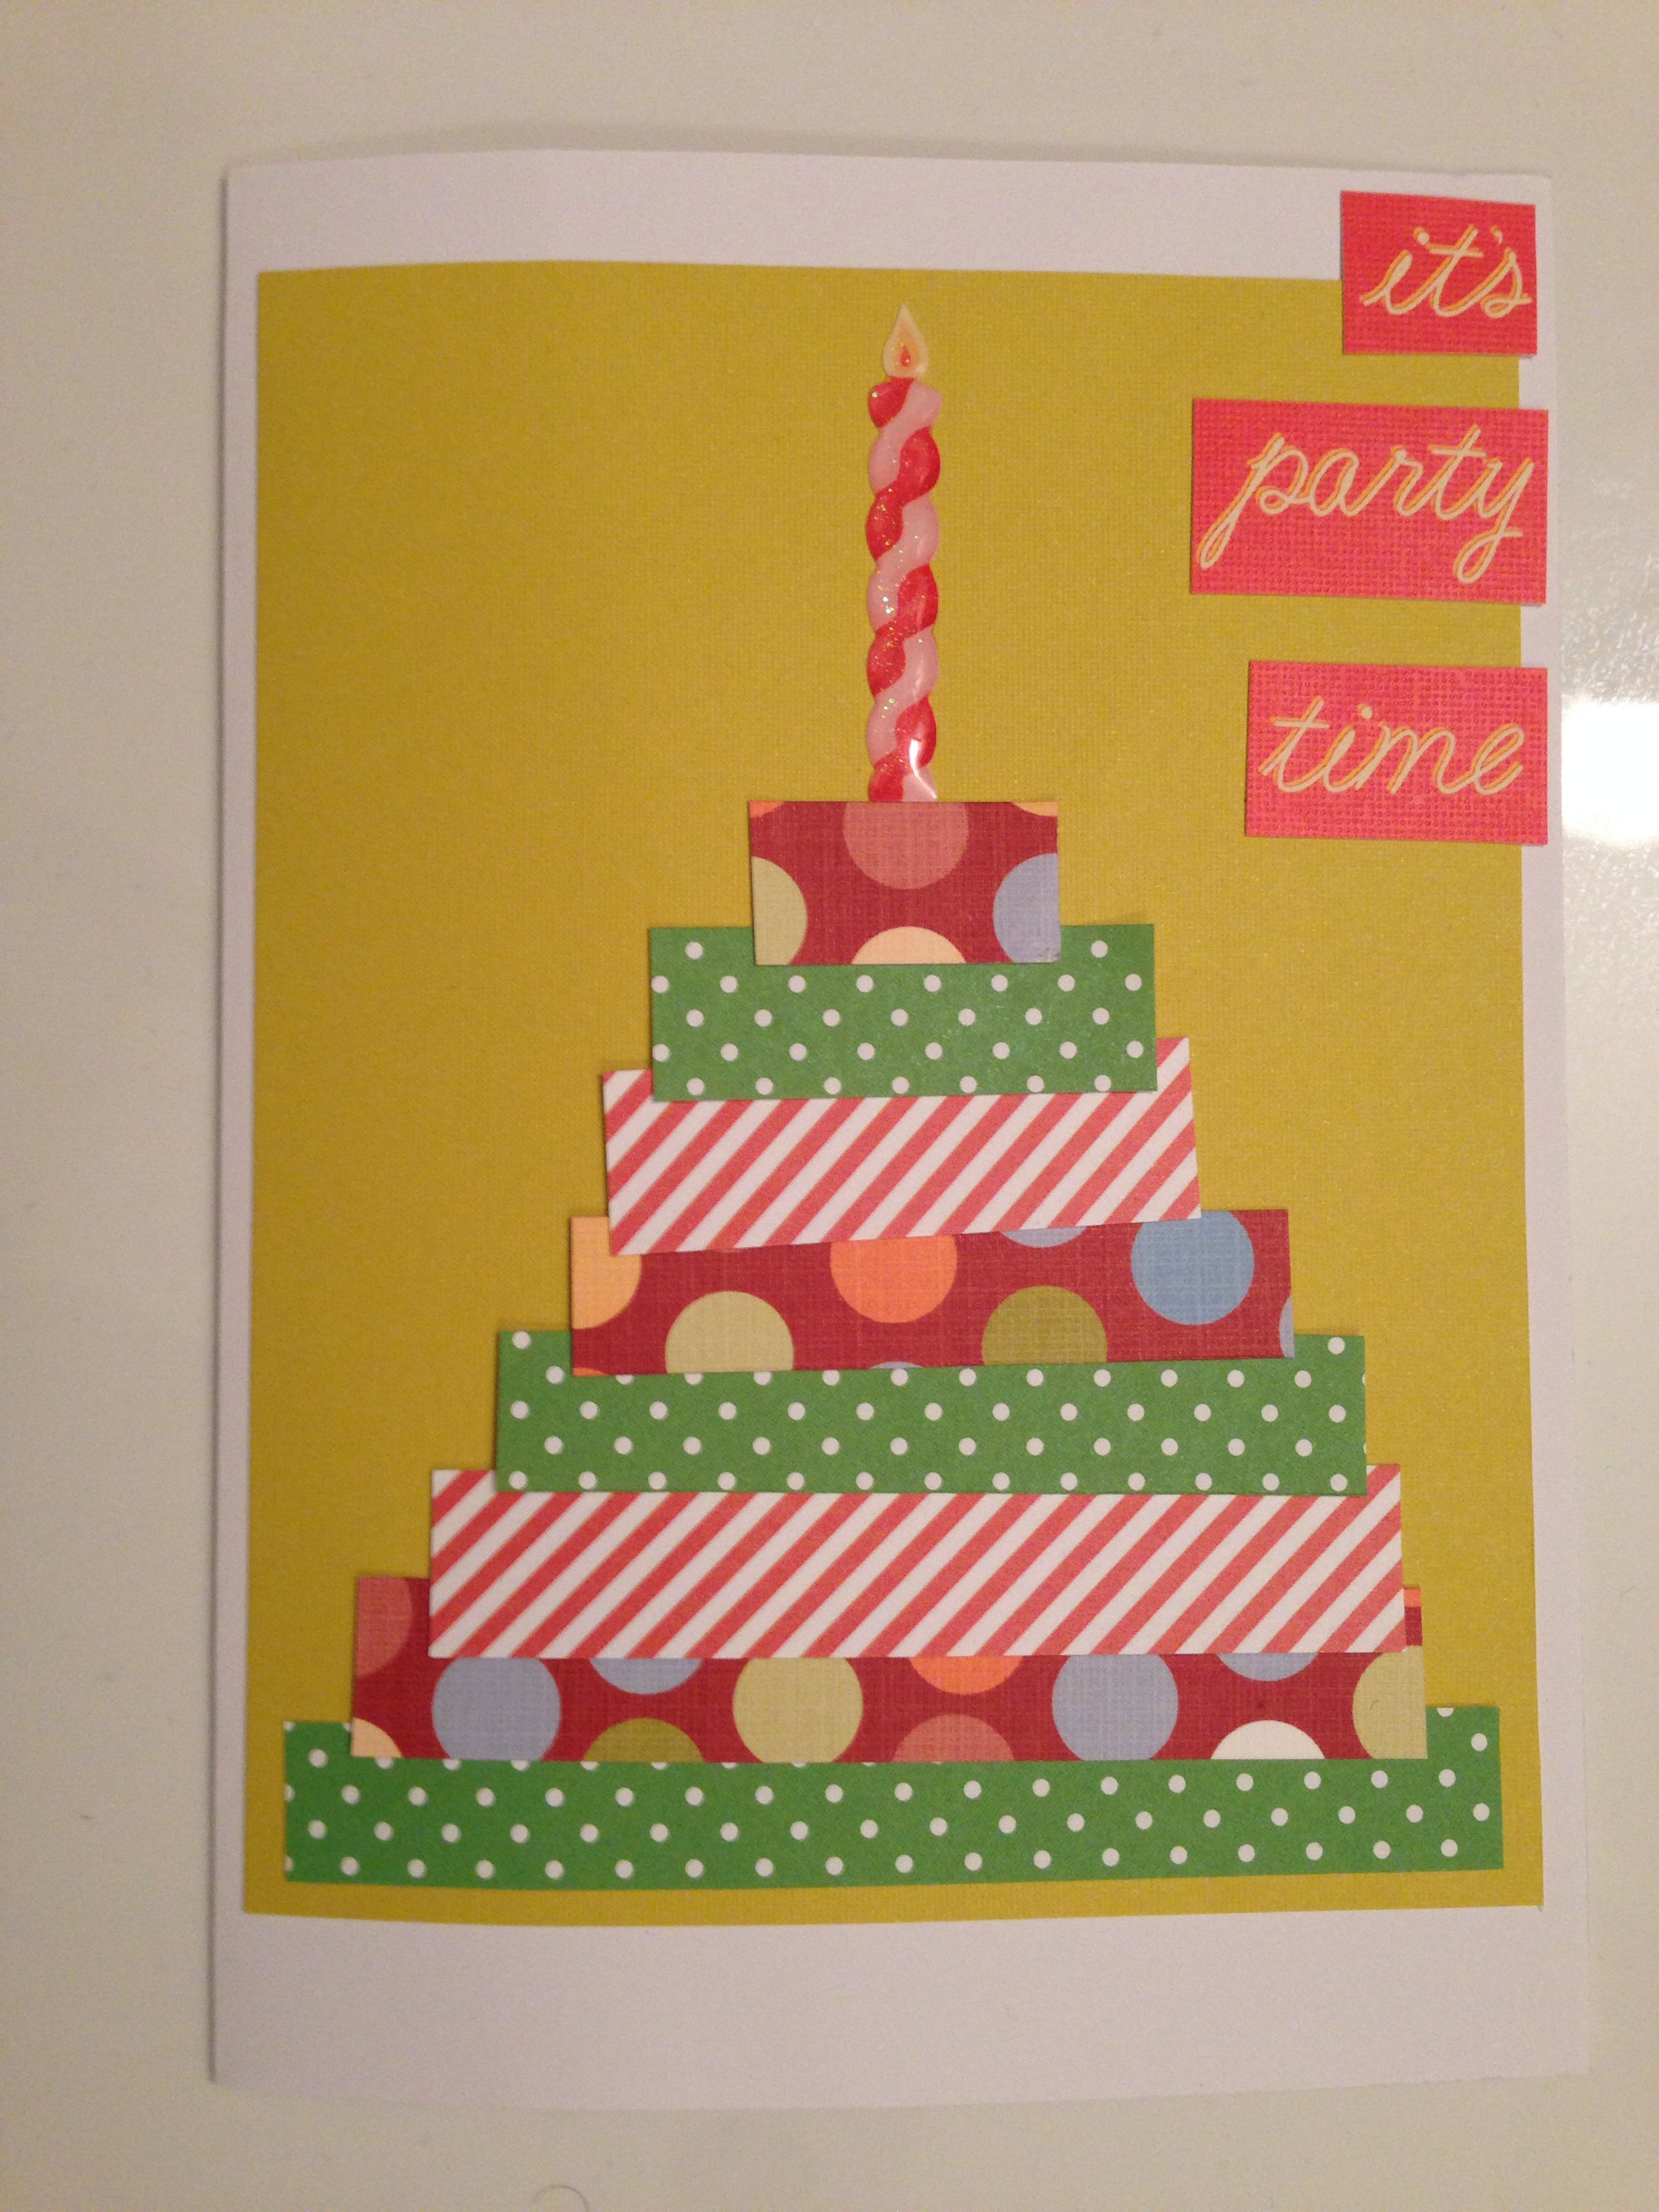 Handmade Birthday Cake Card It S Party Time Can Be Customized To